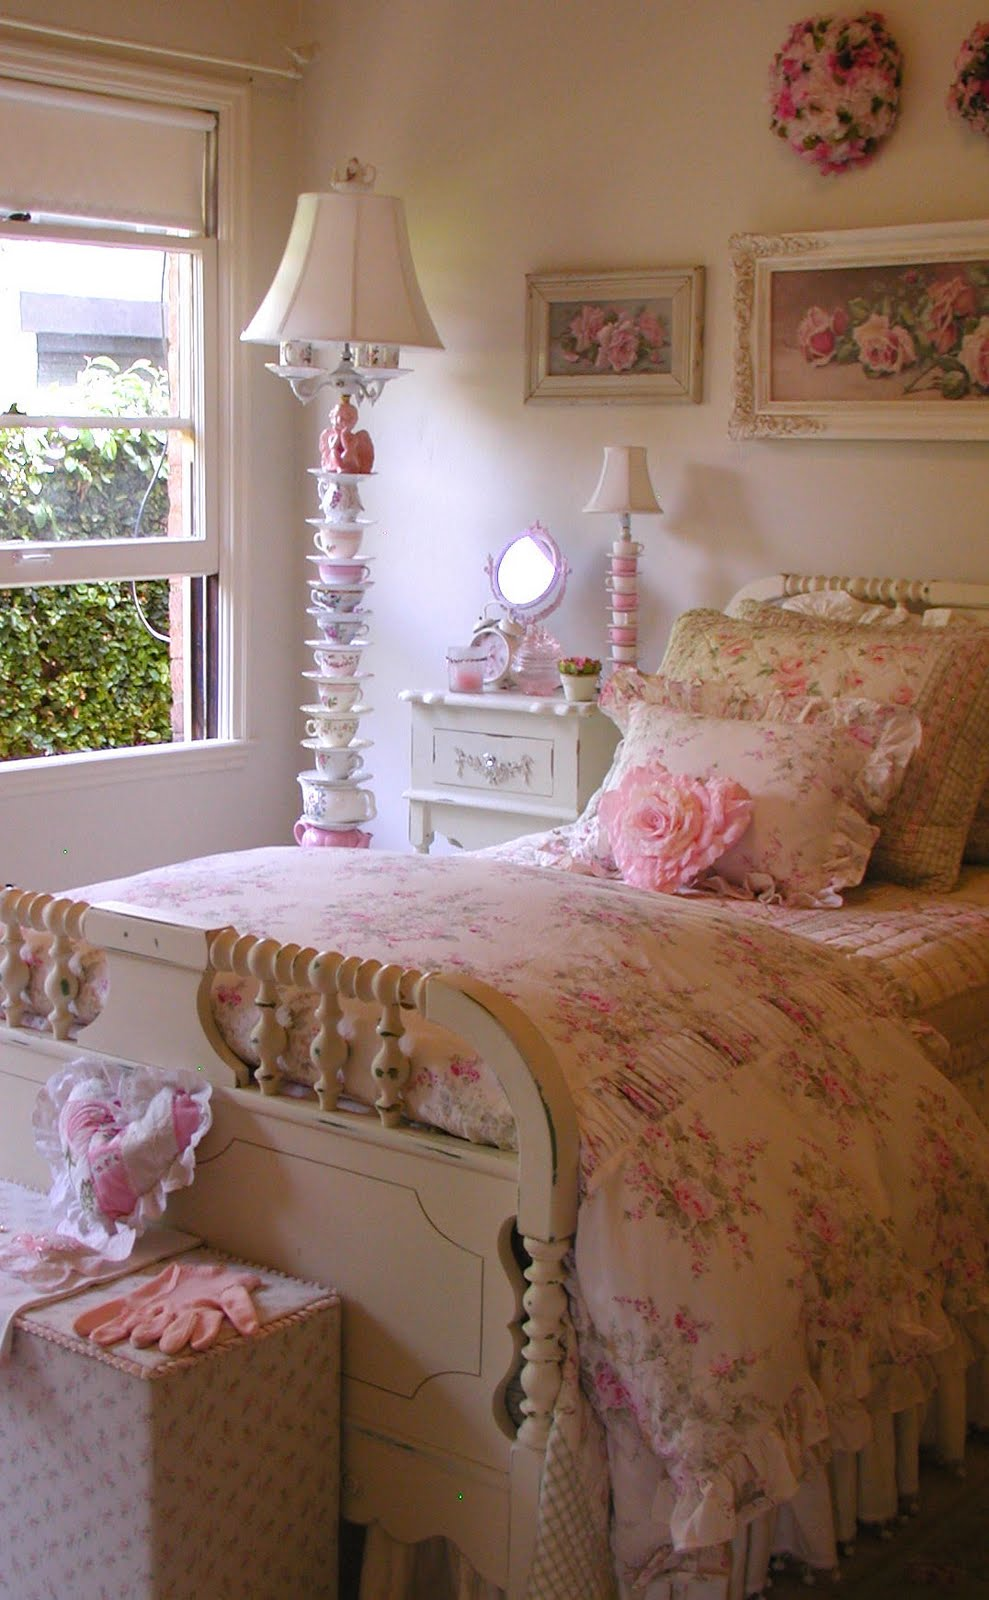 Chateau de fleurs english cottage romance for Cottage bedroom designs